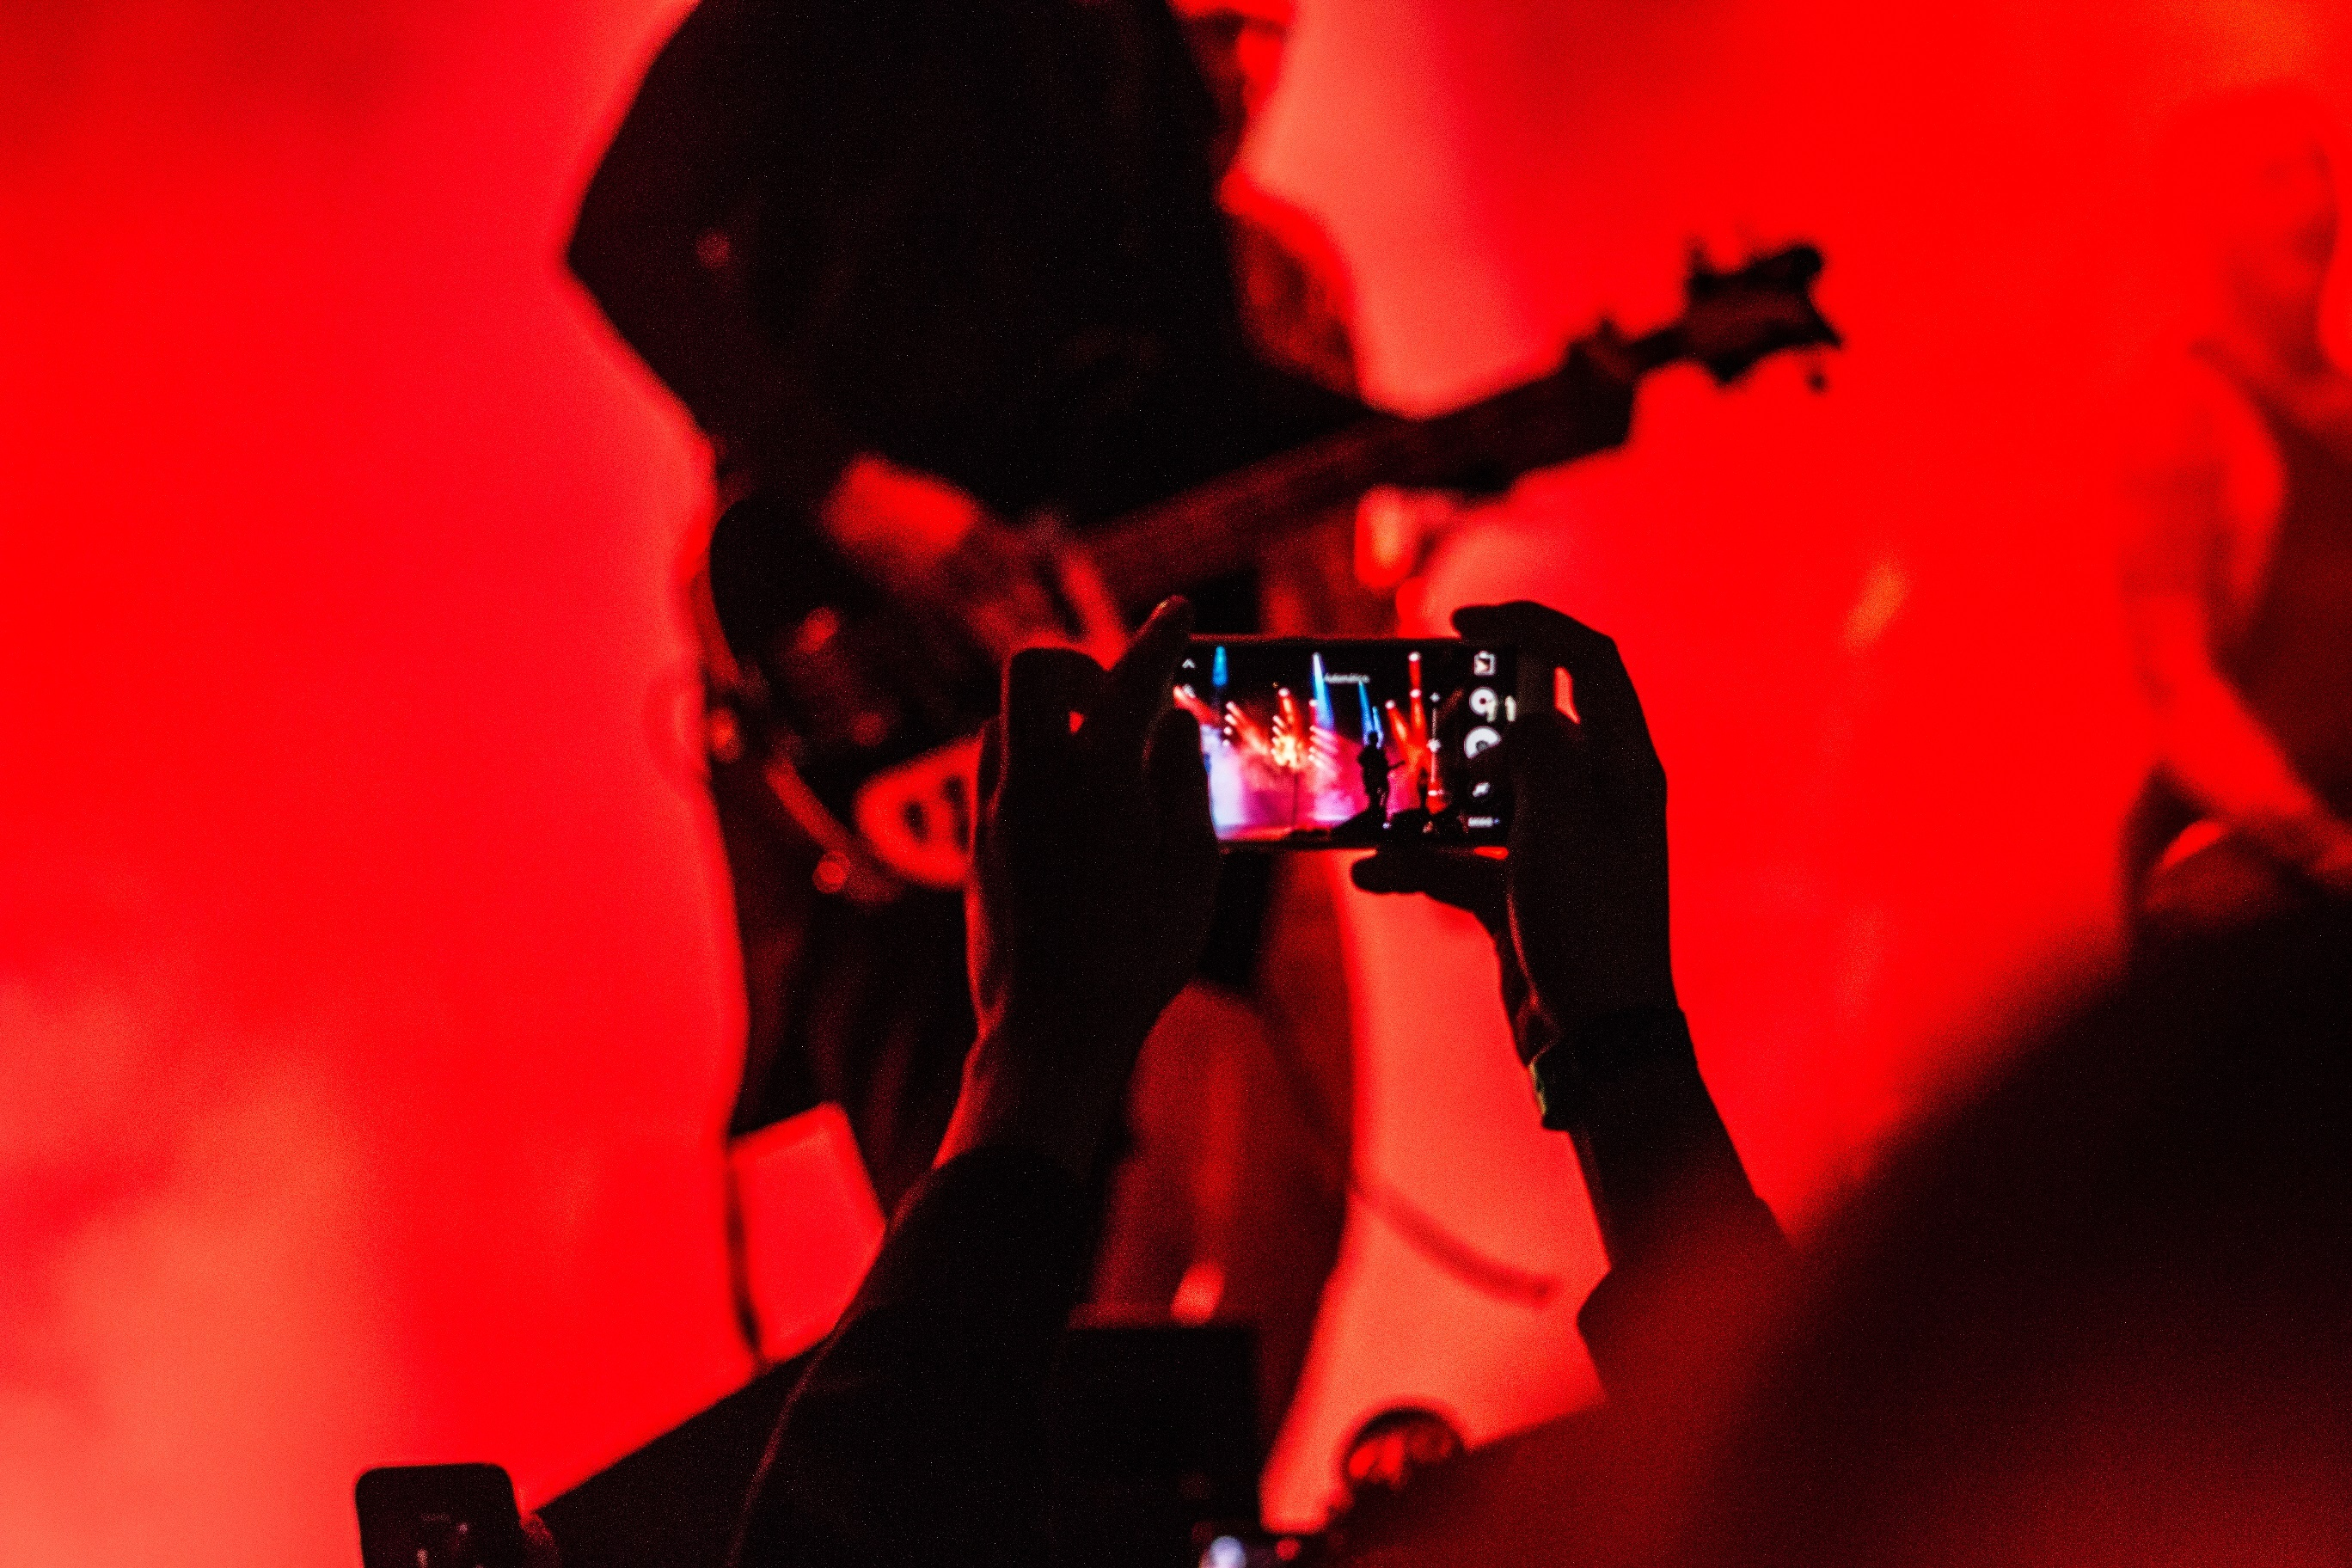 Blog, VLOG or Twitch? How to Keep Your Social Media Menu Full at Your Events.